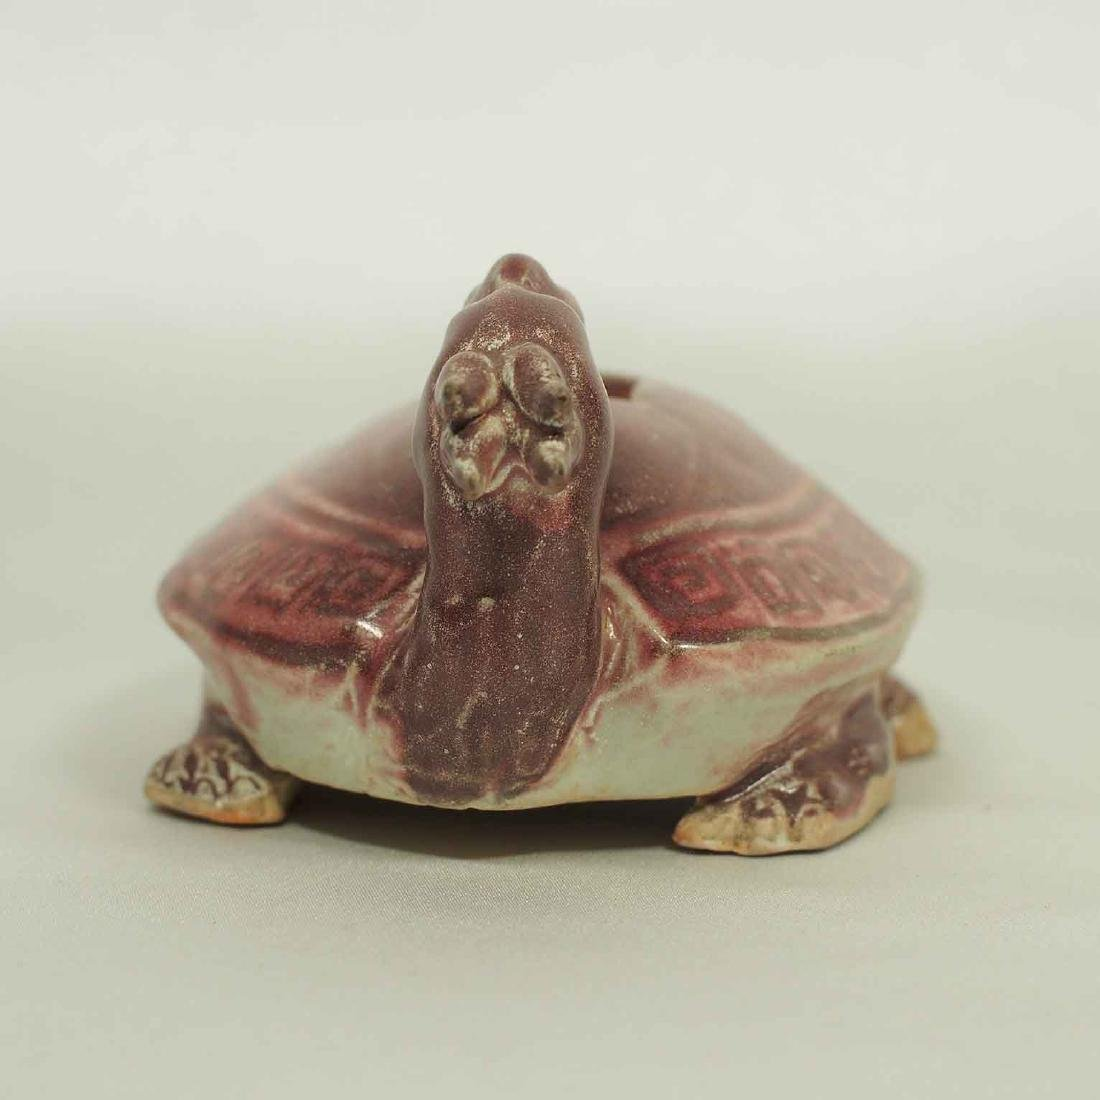 Scholar's Dragon-Turtle Form Waterpot, Ming Dynasty - 4